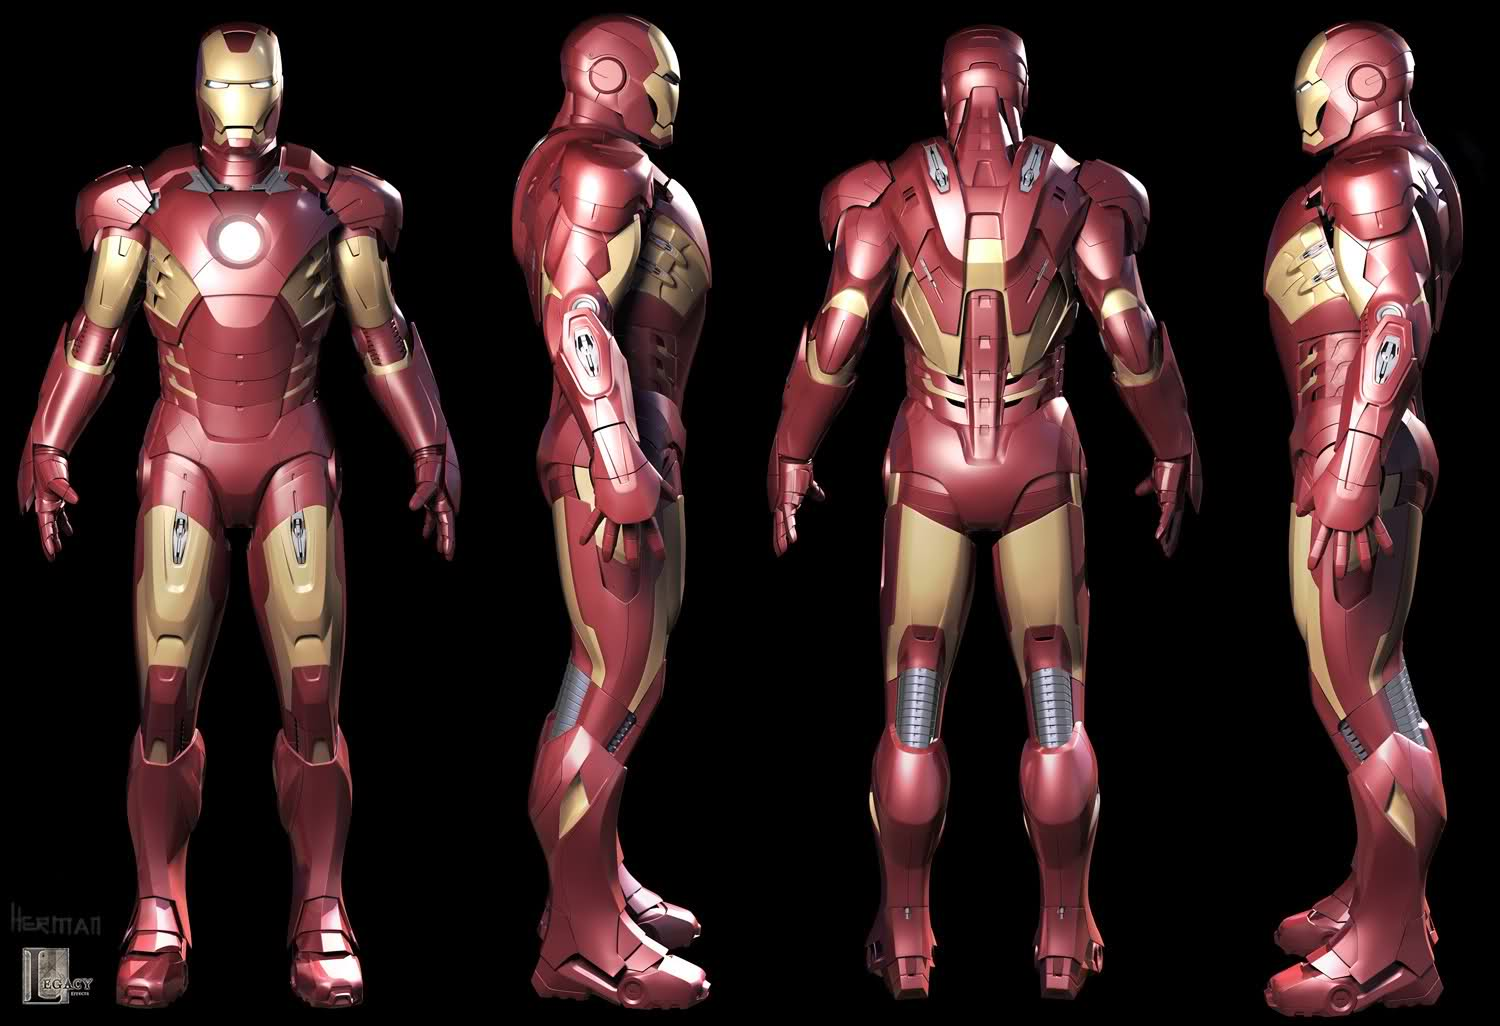 Image - Iron man mark vii armored suit 3d model by scarlighter ...